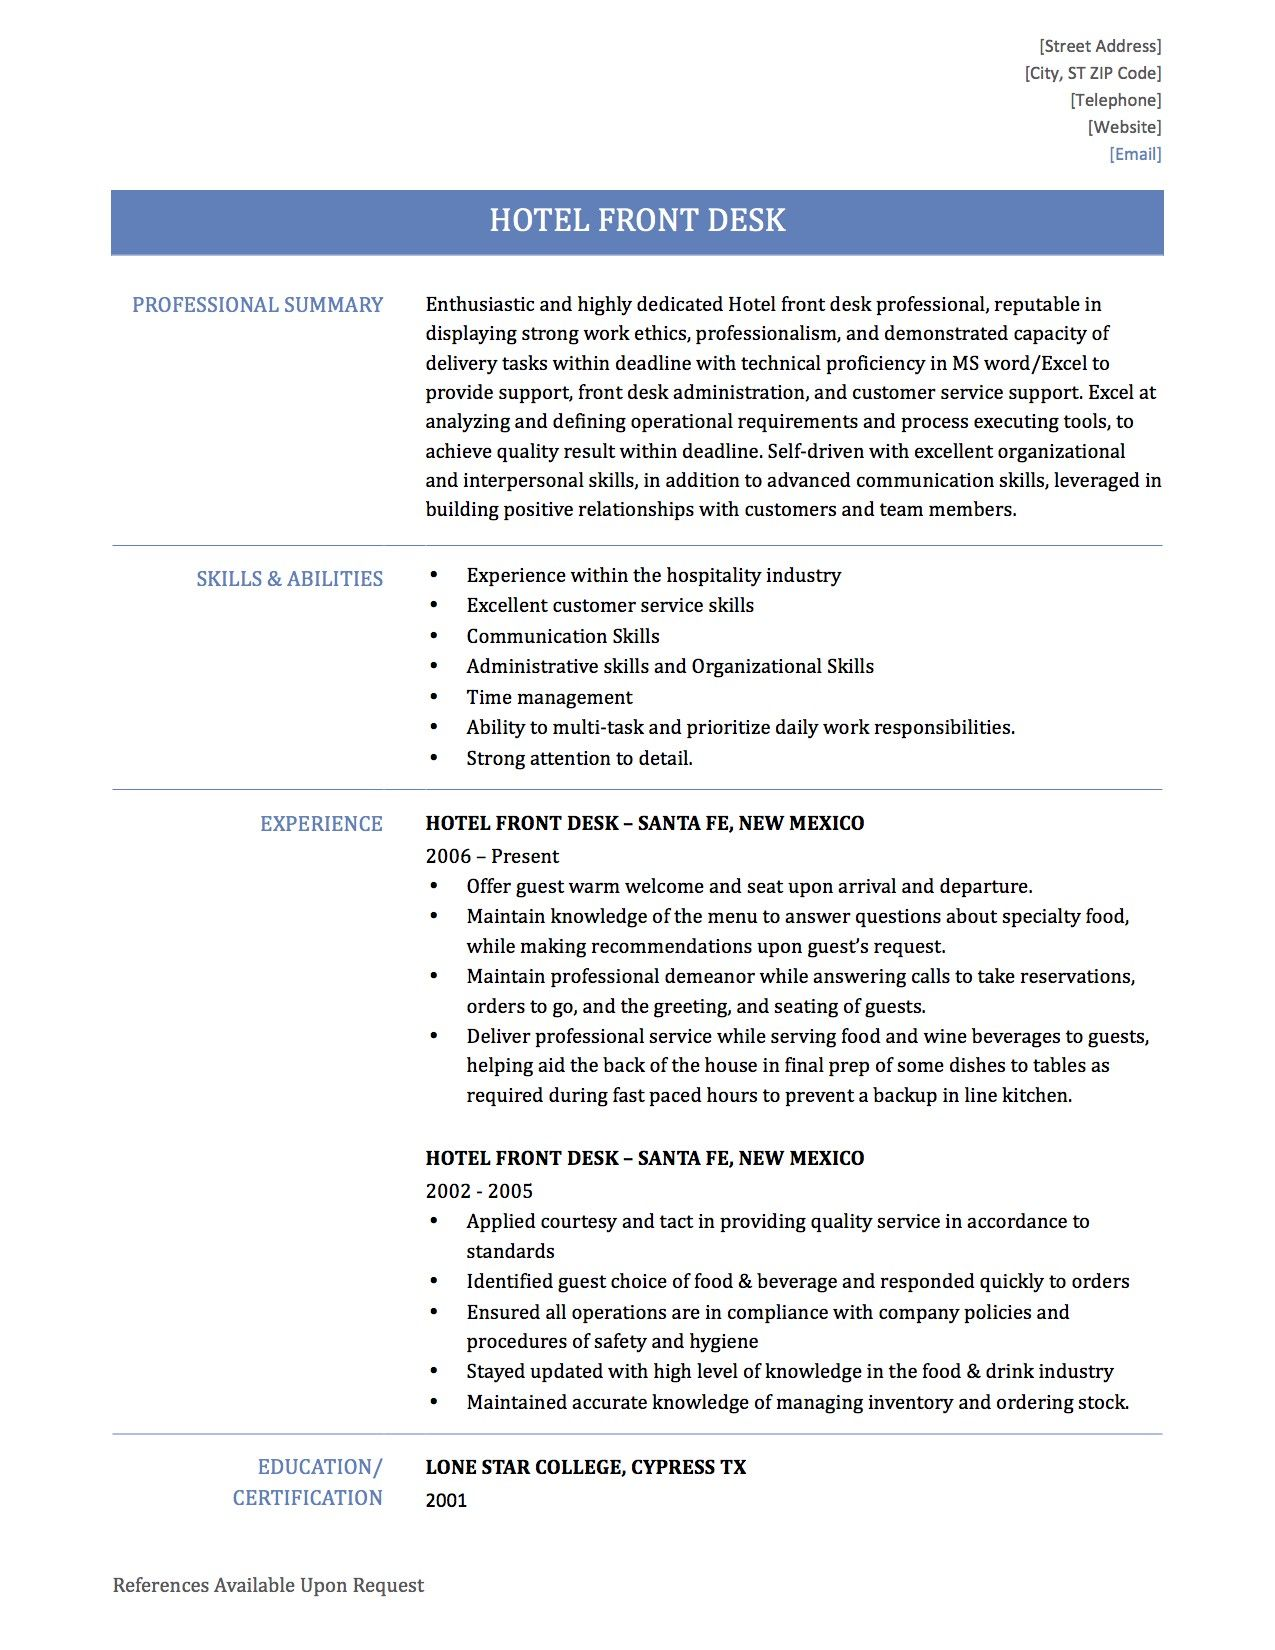 How To Write A Hotel Front Desk Resume in 2020 Manager